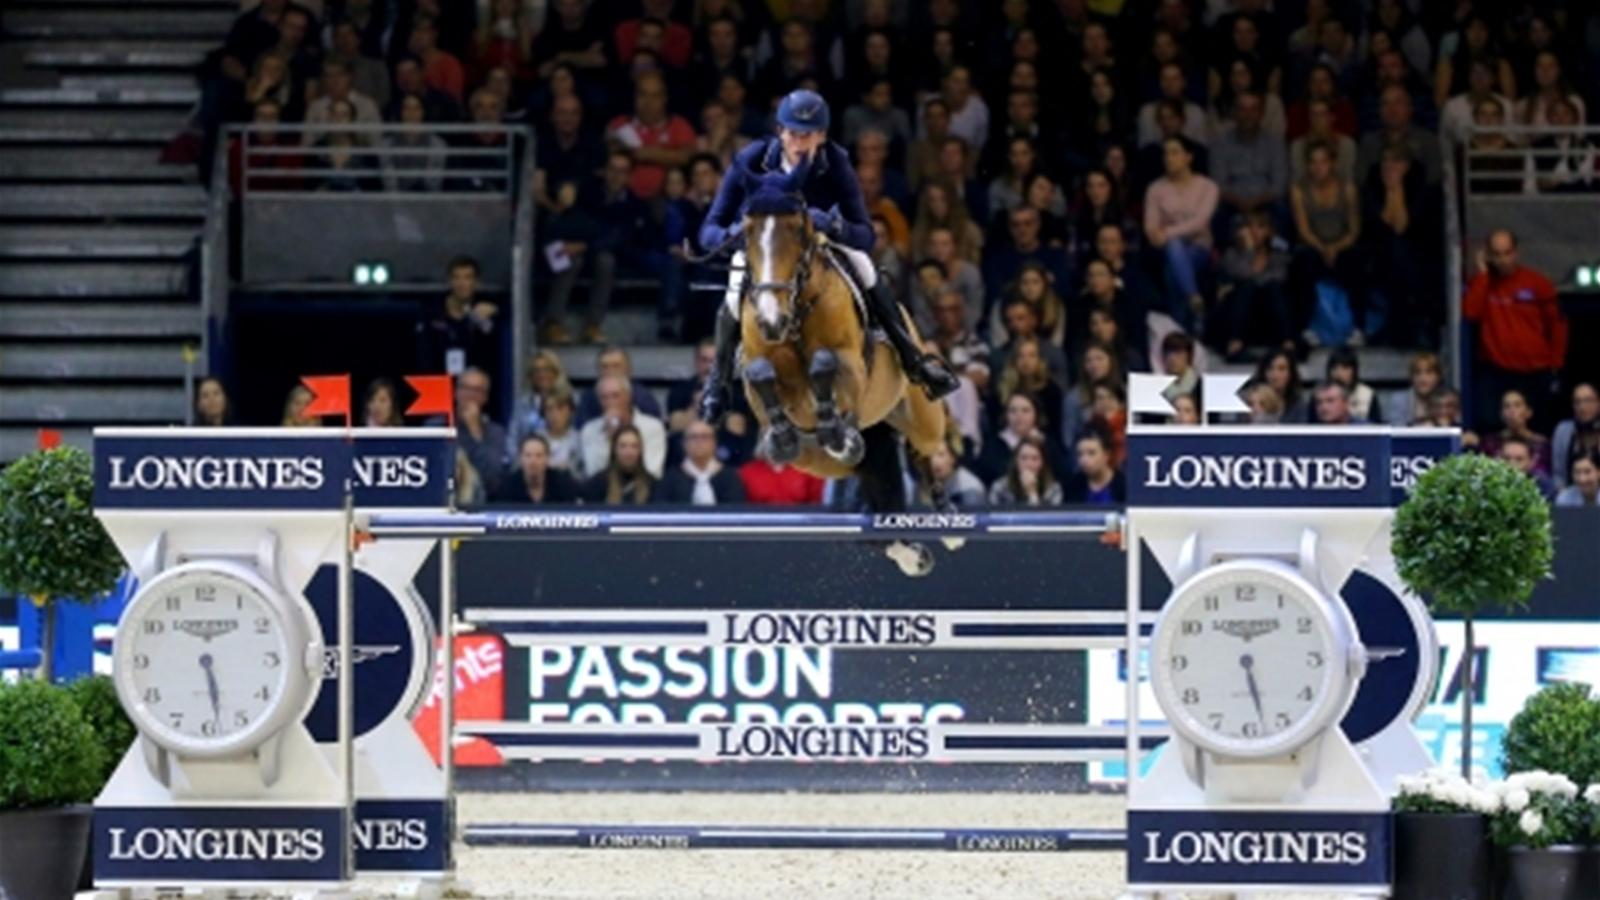 Germany s deusser lights up lyon again to win longines fei - University league tables french ...